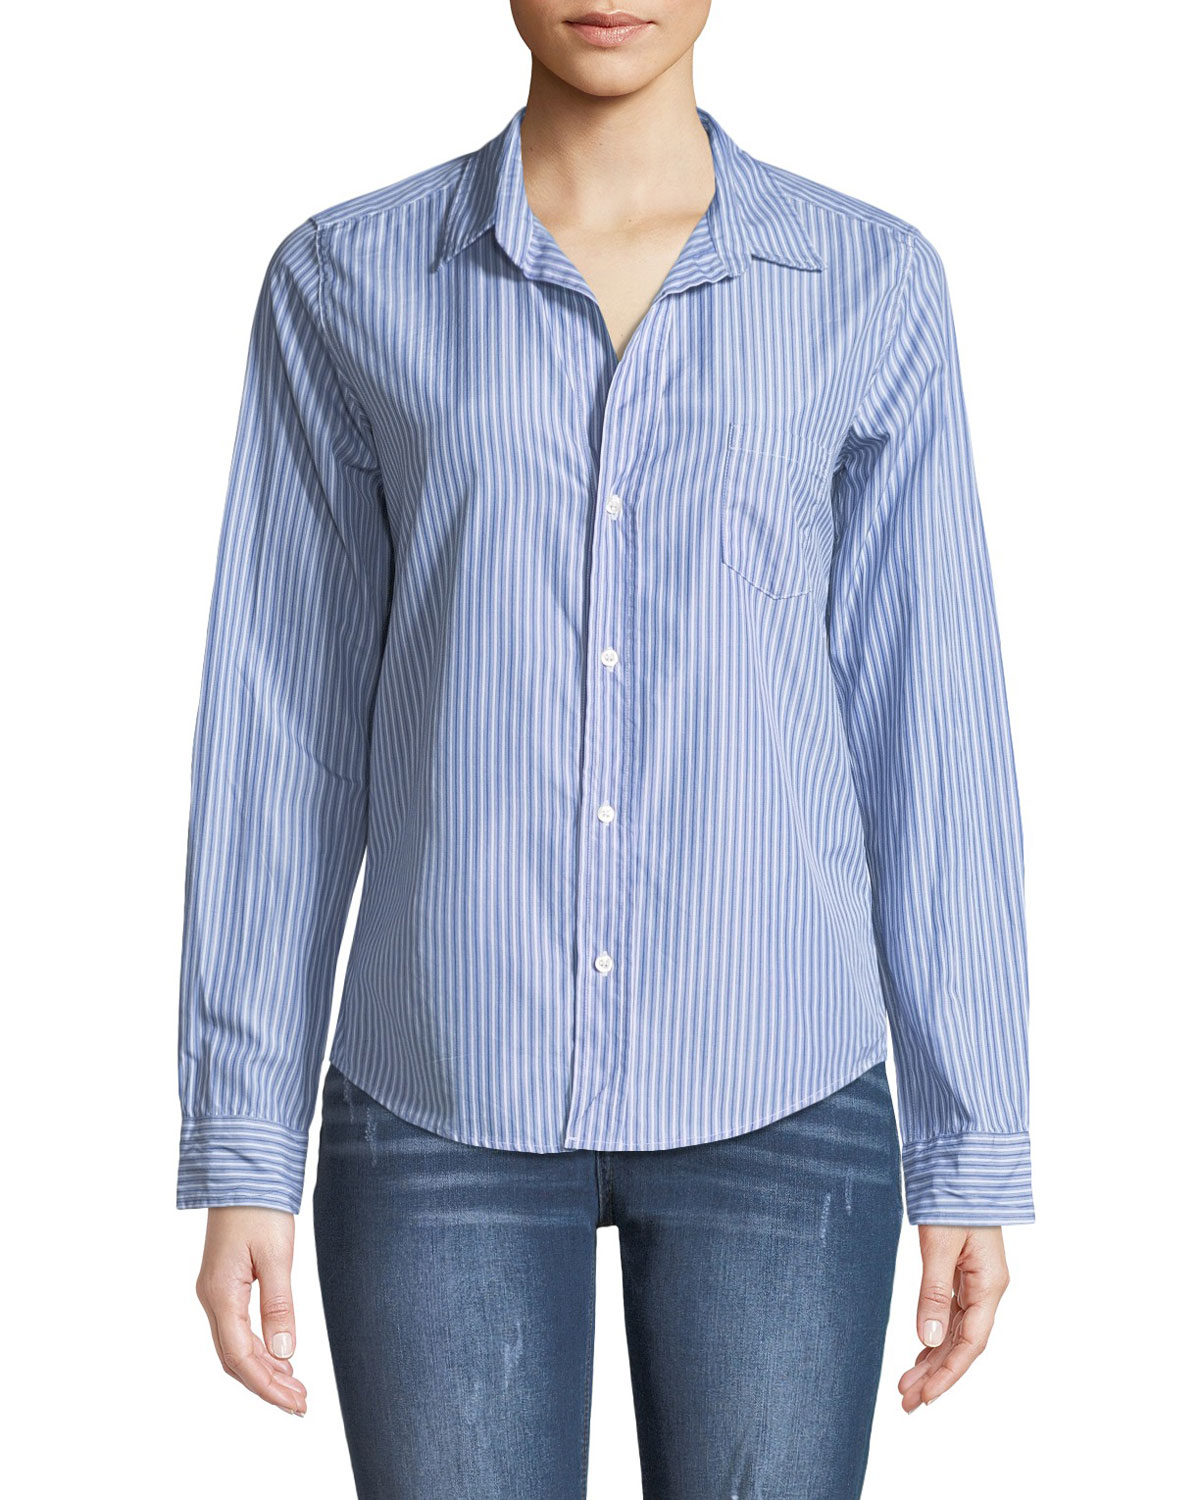 4633f6f37 Frank + Eileen Women's Tops   Frank + Eileen Shirts and Blouses at ...